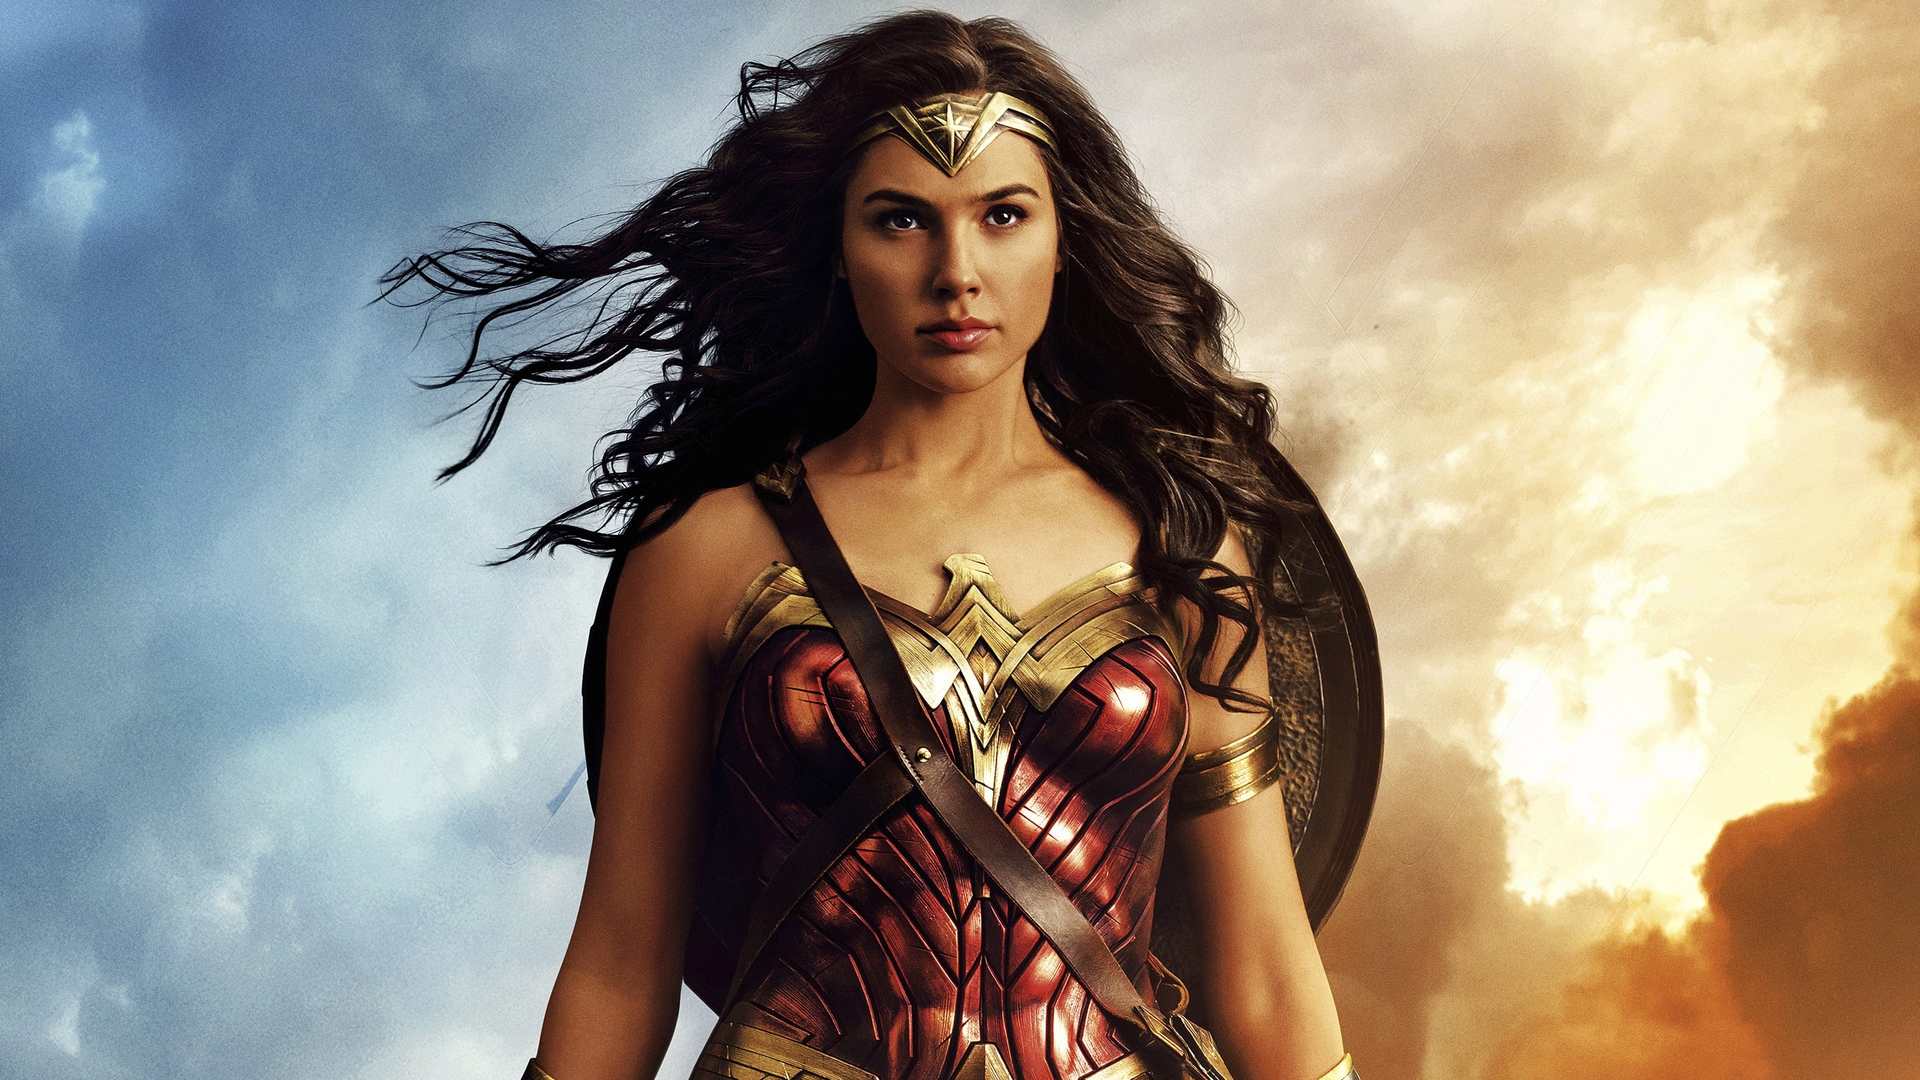 Wonderwoman Live Wallpaper: Free Wonder Woman Wallpaper